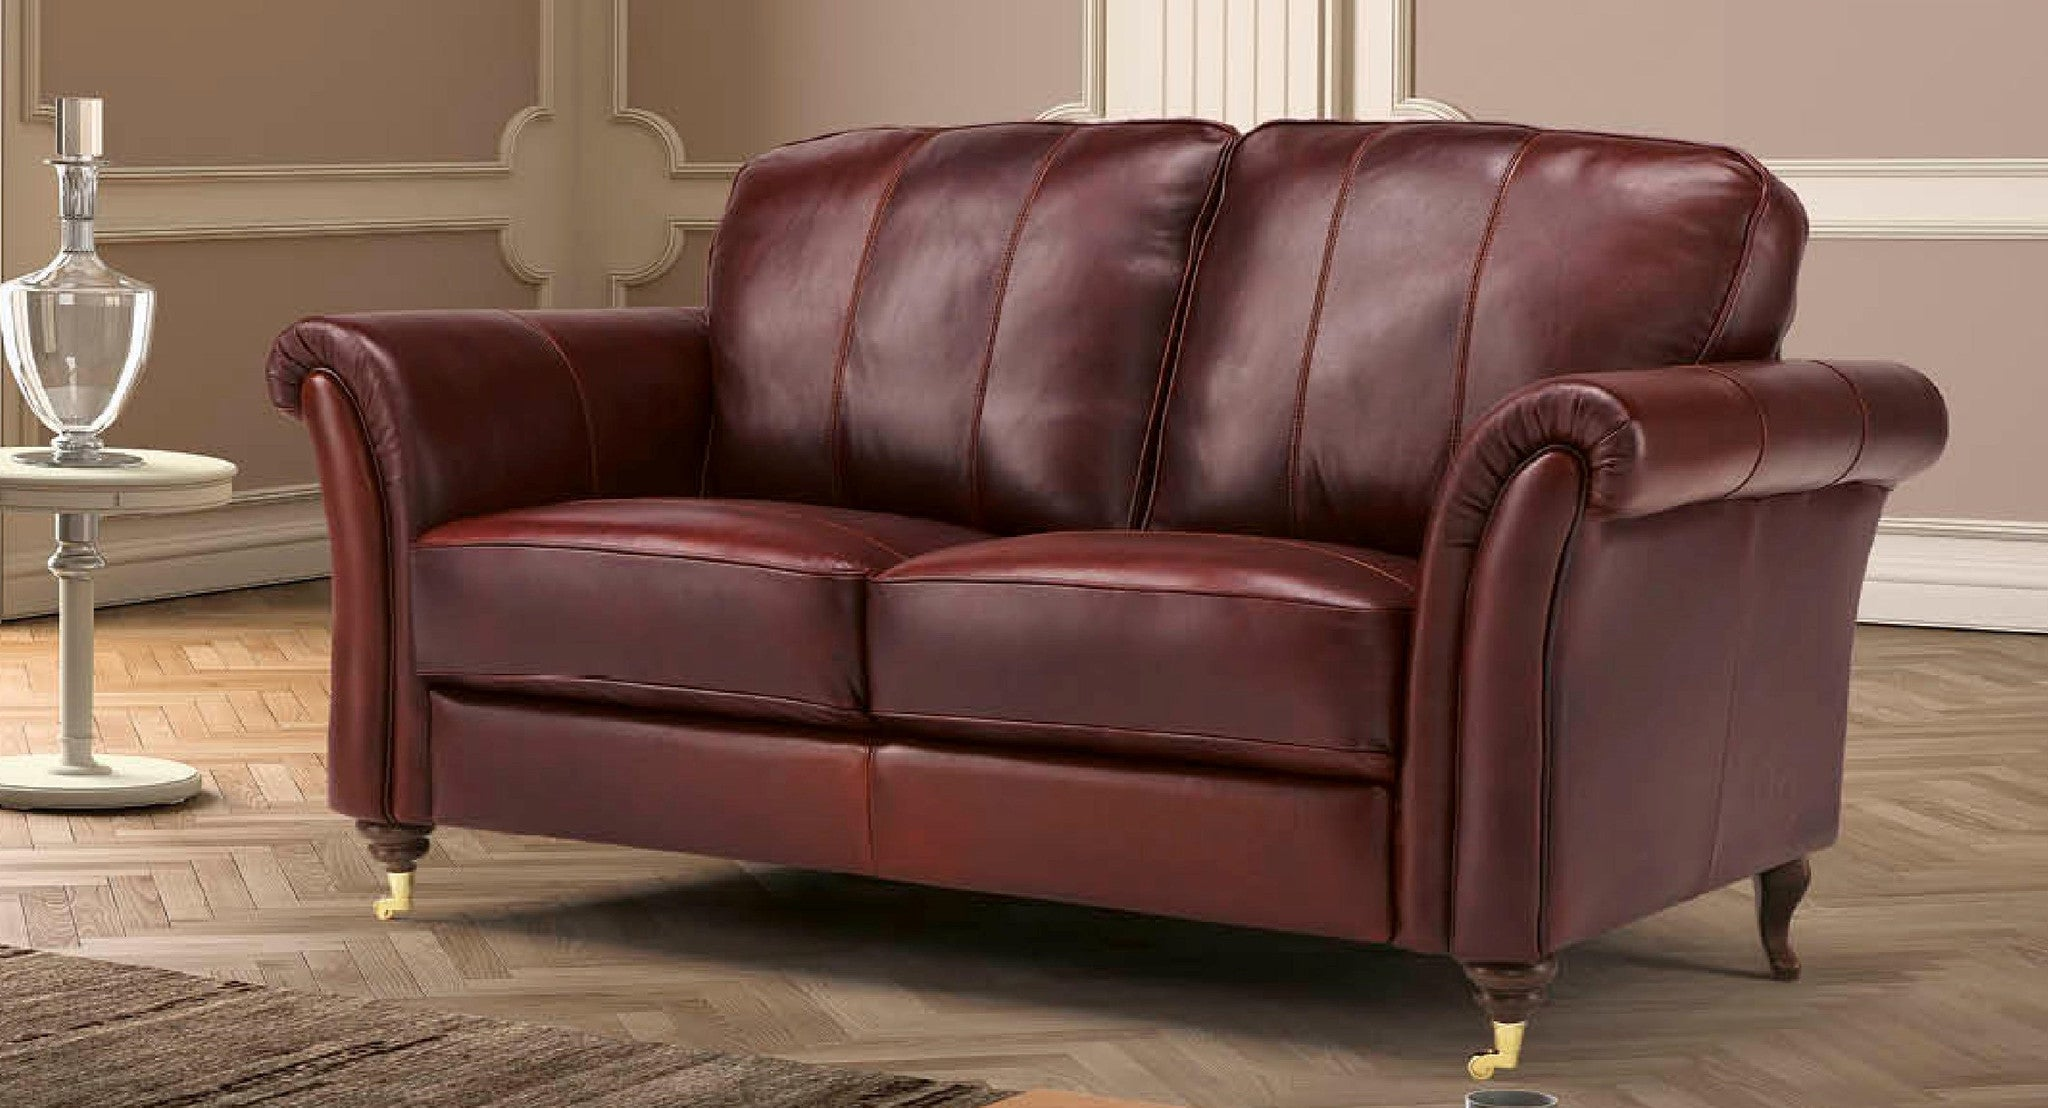 Italian Leather Sofas in Bolsover